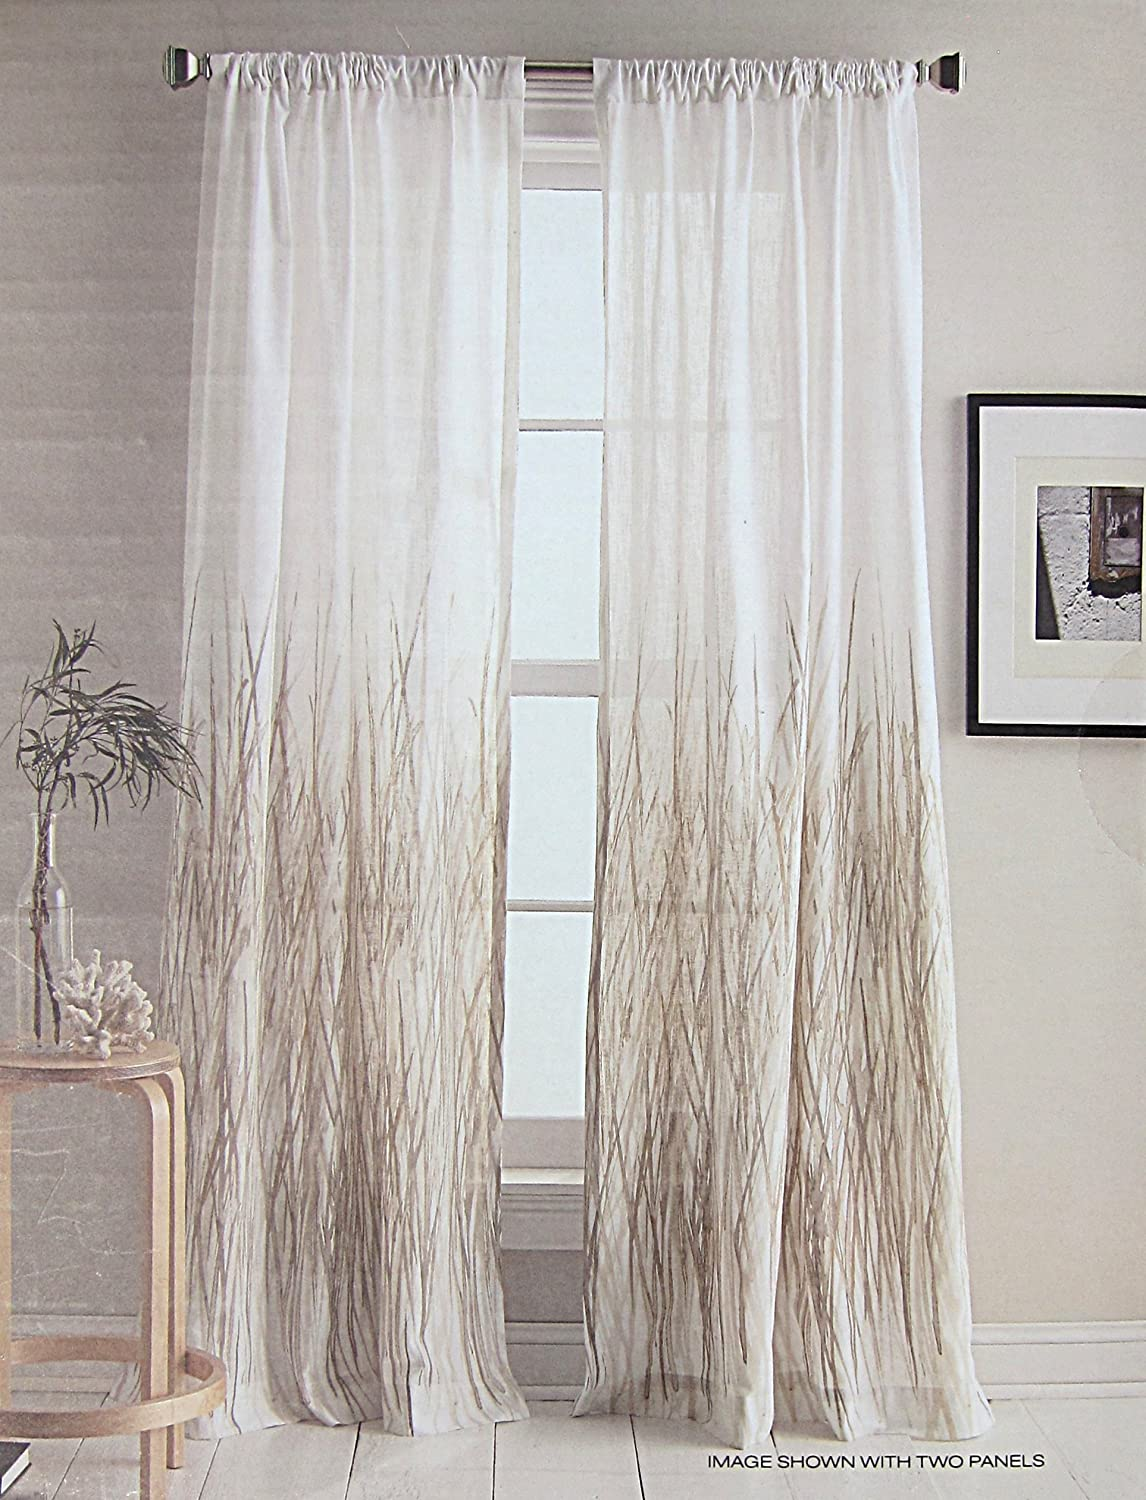 panel spanish door patio steps thecurtainshop curtains inch grommet com